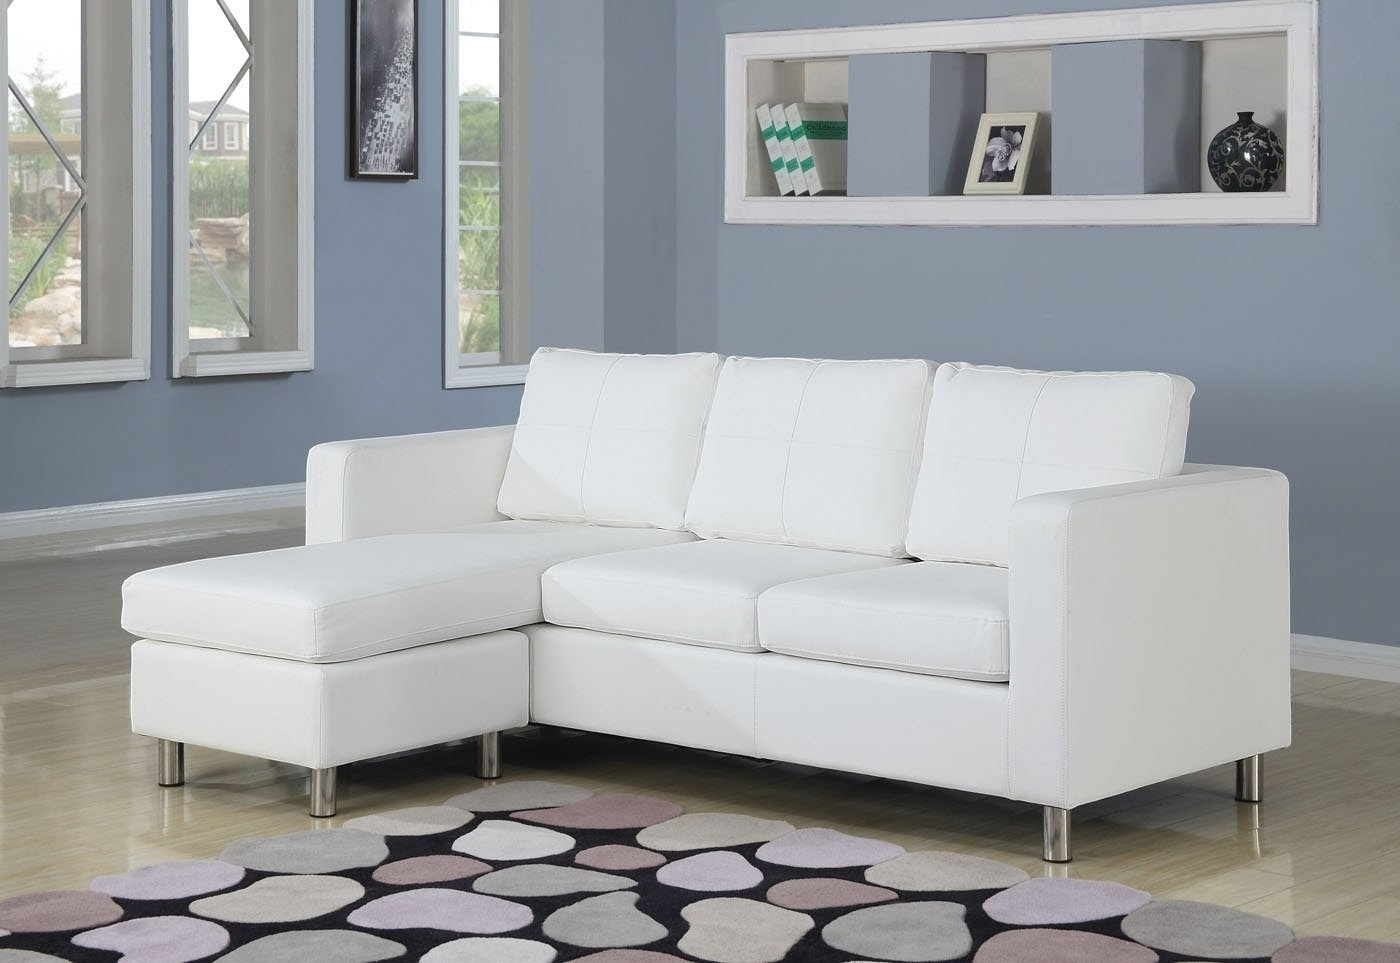 Well Known Furniture : Cb2 Sofa Warranty Sofa Chaise Longue Xxl Chaise Sofa In Sectional Sofas In Hyderabad (View 13 of 15)